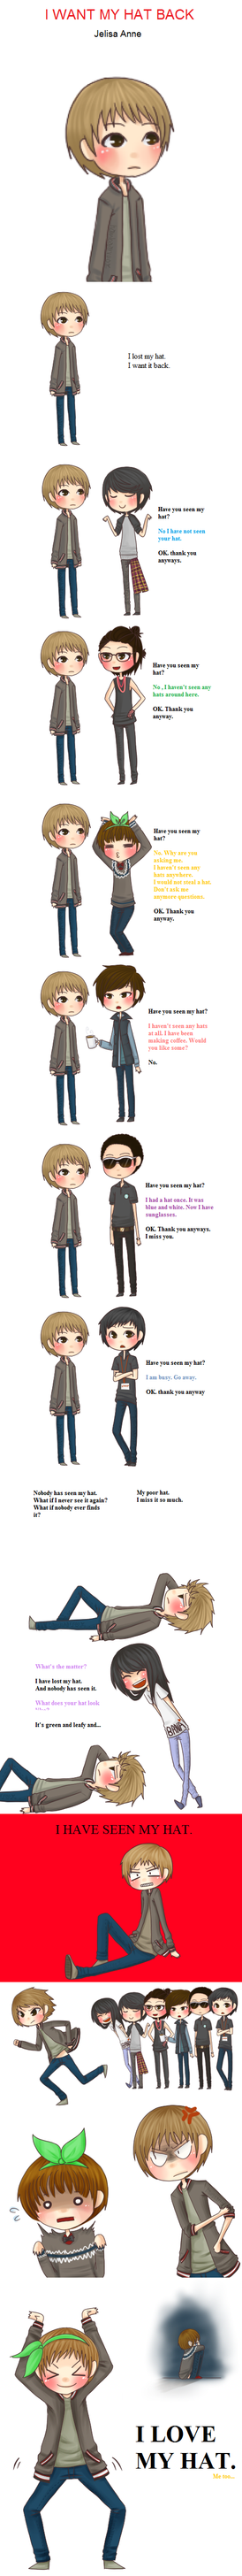 'I Want My Hat Back'- B1A4 Ver. by jaljello